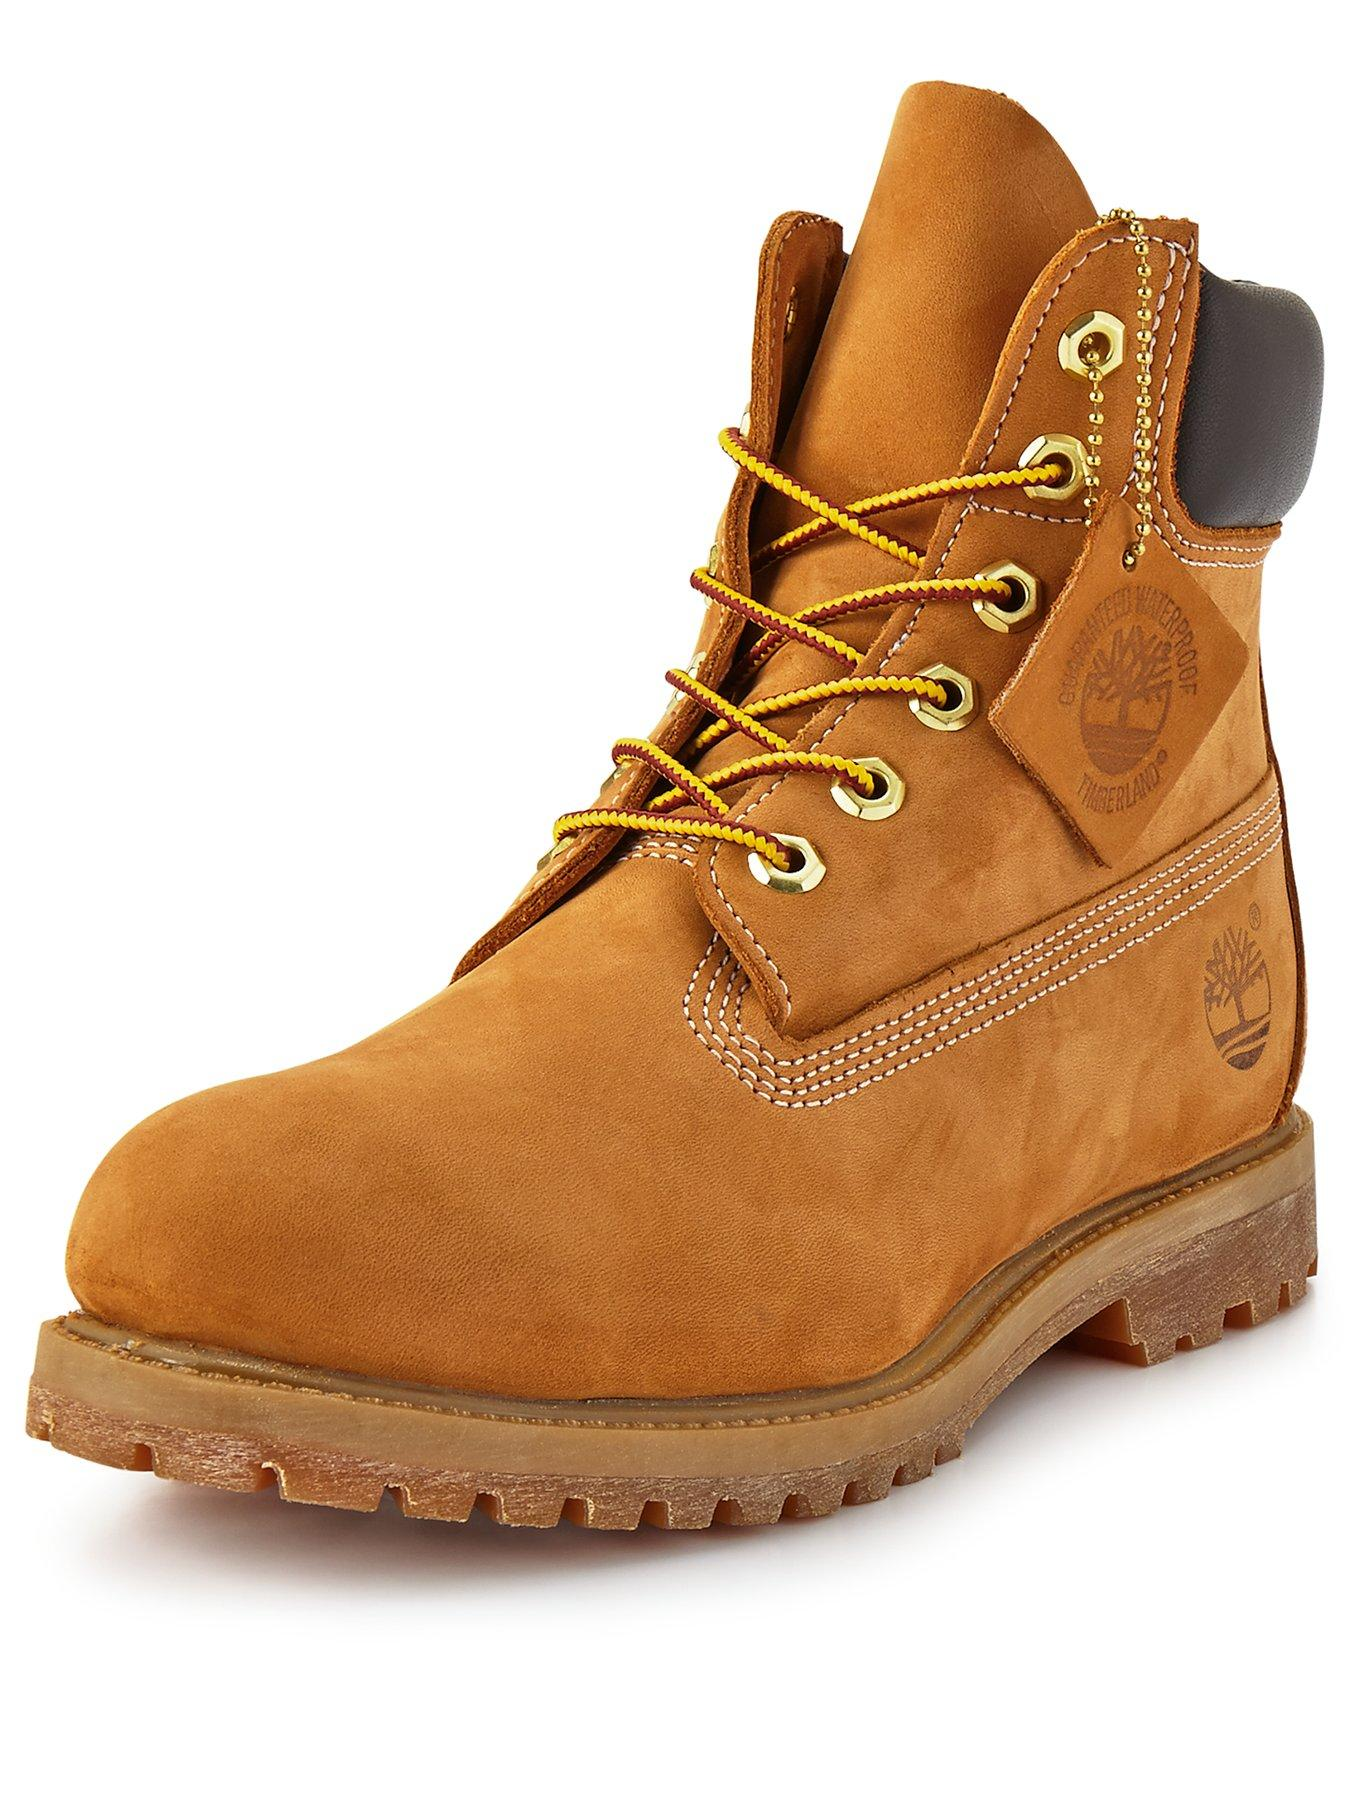 Womens Timberland Boots   Very.co.uk